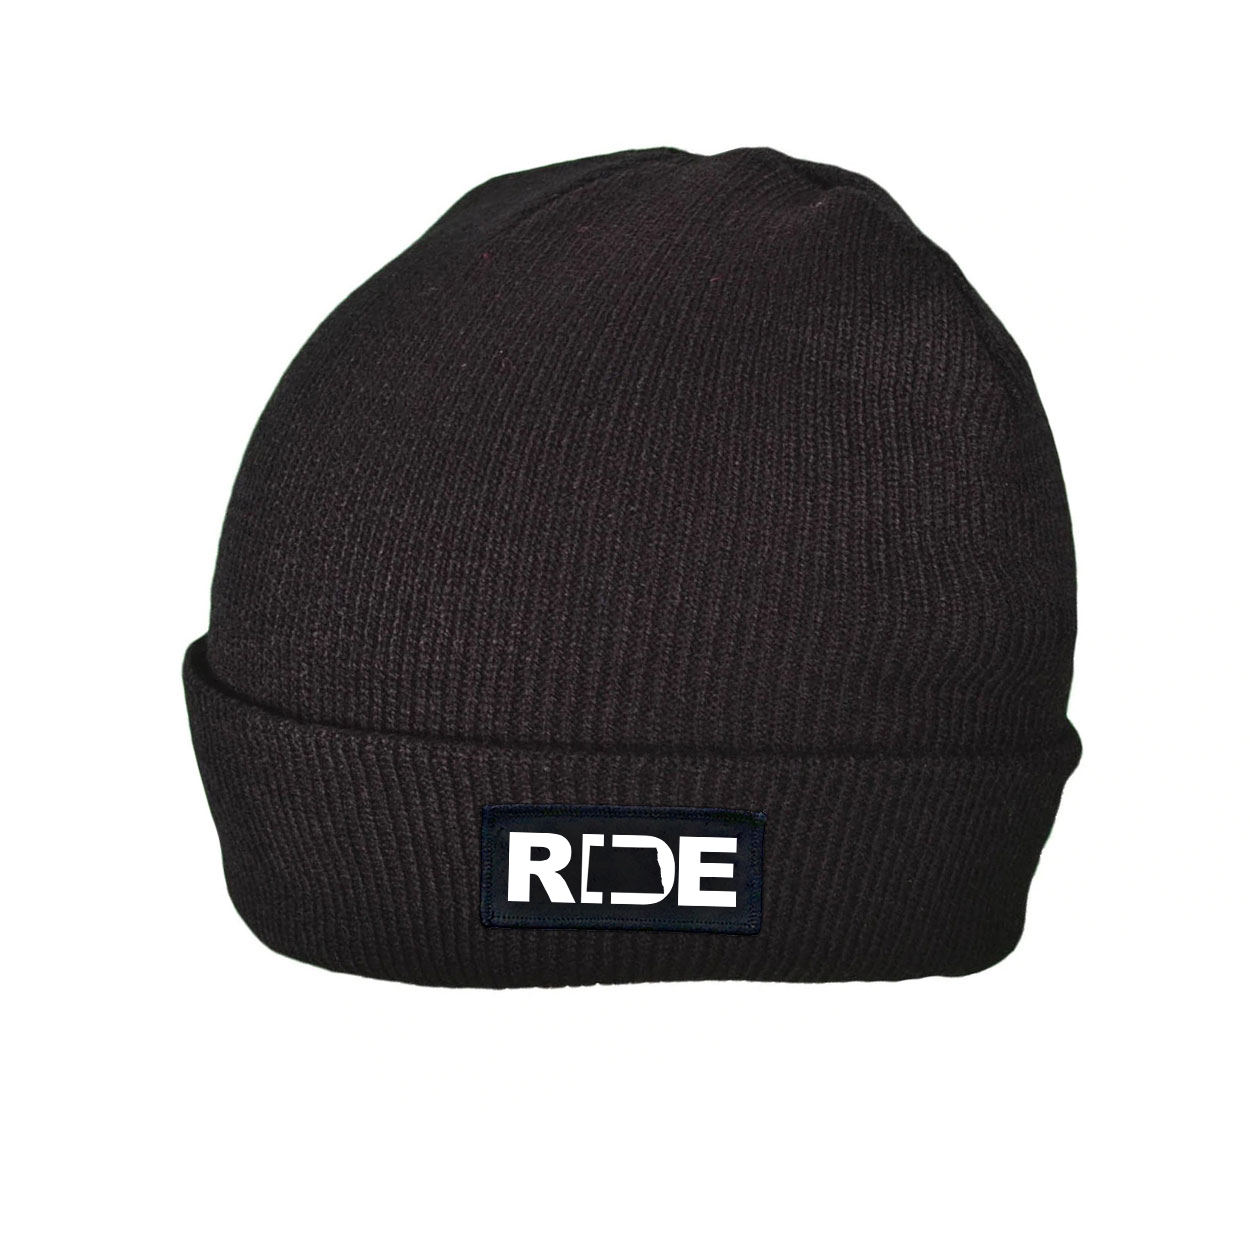 Ride North Dakota Night Out Woven Patch Roll Up Skully Beanie Black (White Logo)